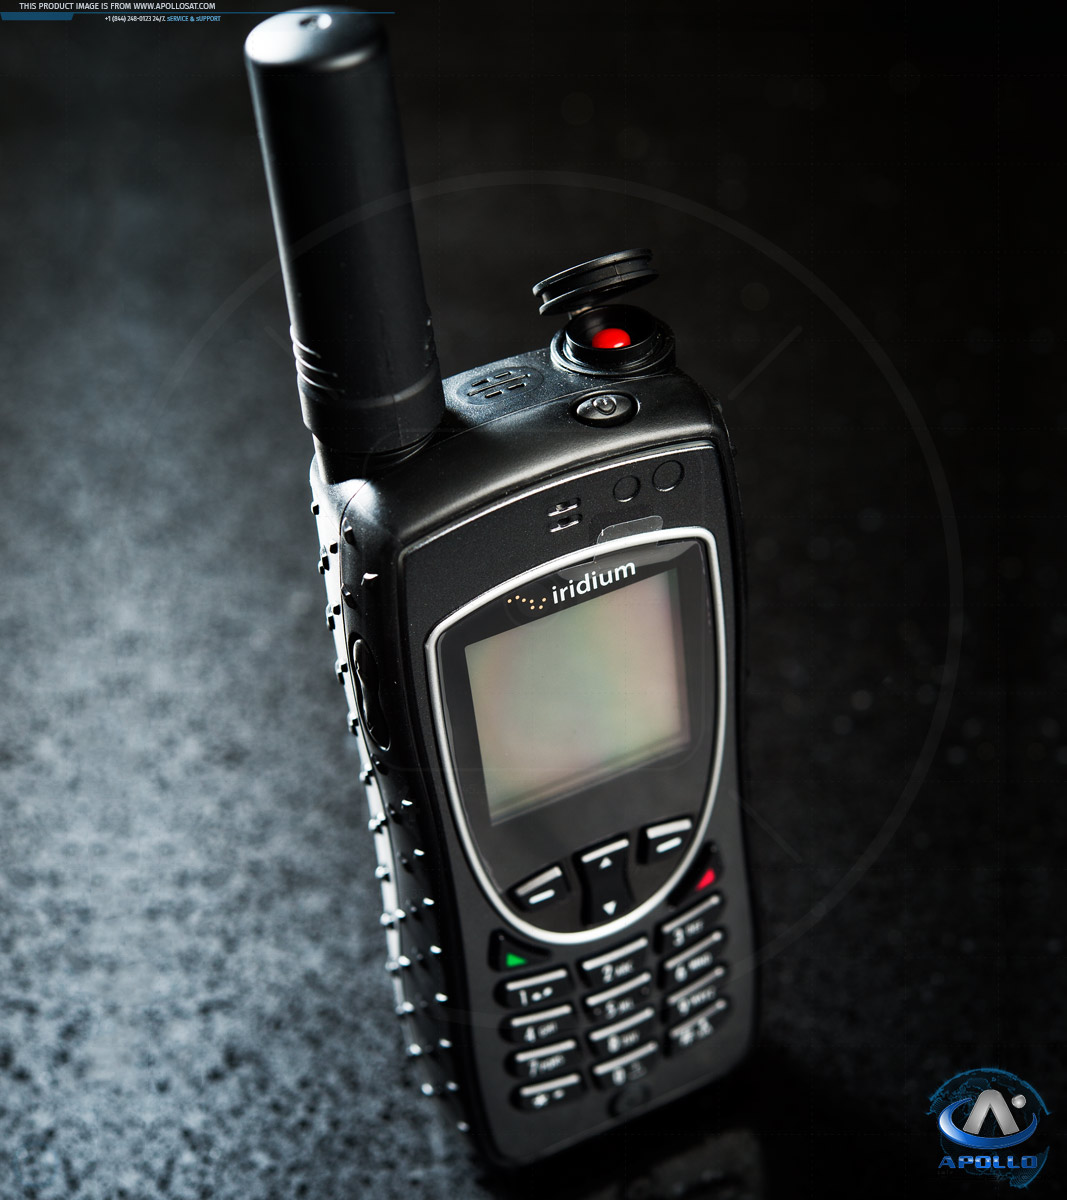 Iridium Extreme 9575 Satellite Phone CPKT1101 | Apollo Satcom